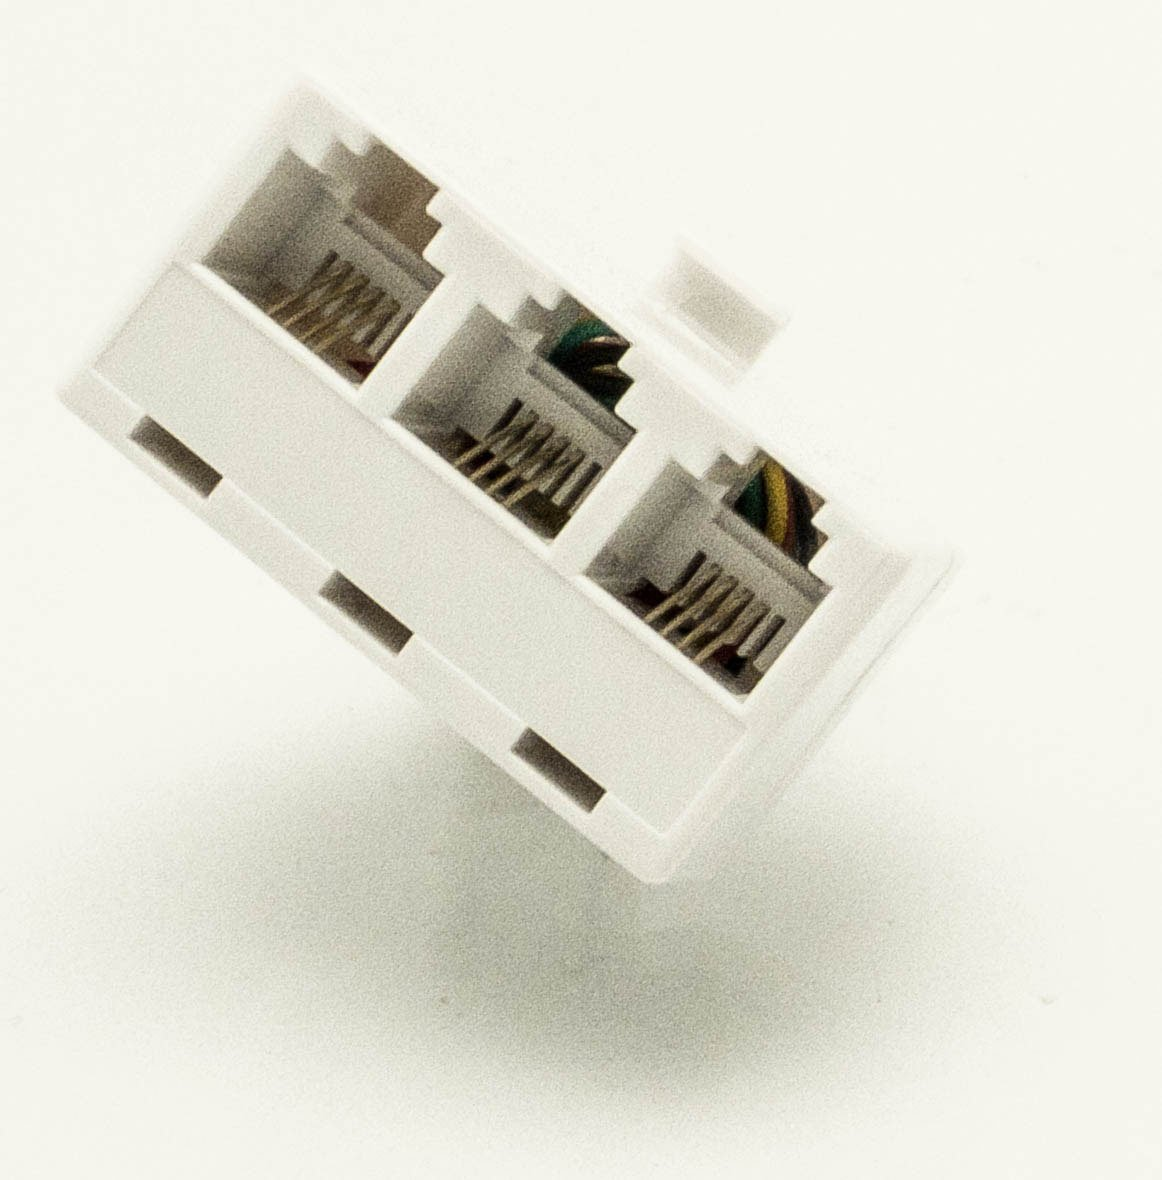 hight resolution of modular triplex jack 4 4 4 phone adapter modular jack classic white allows connecting multiple phone devices to a single outlet quality sound